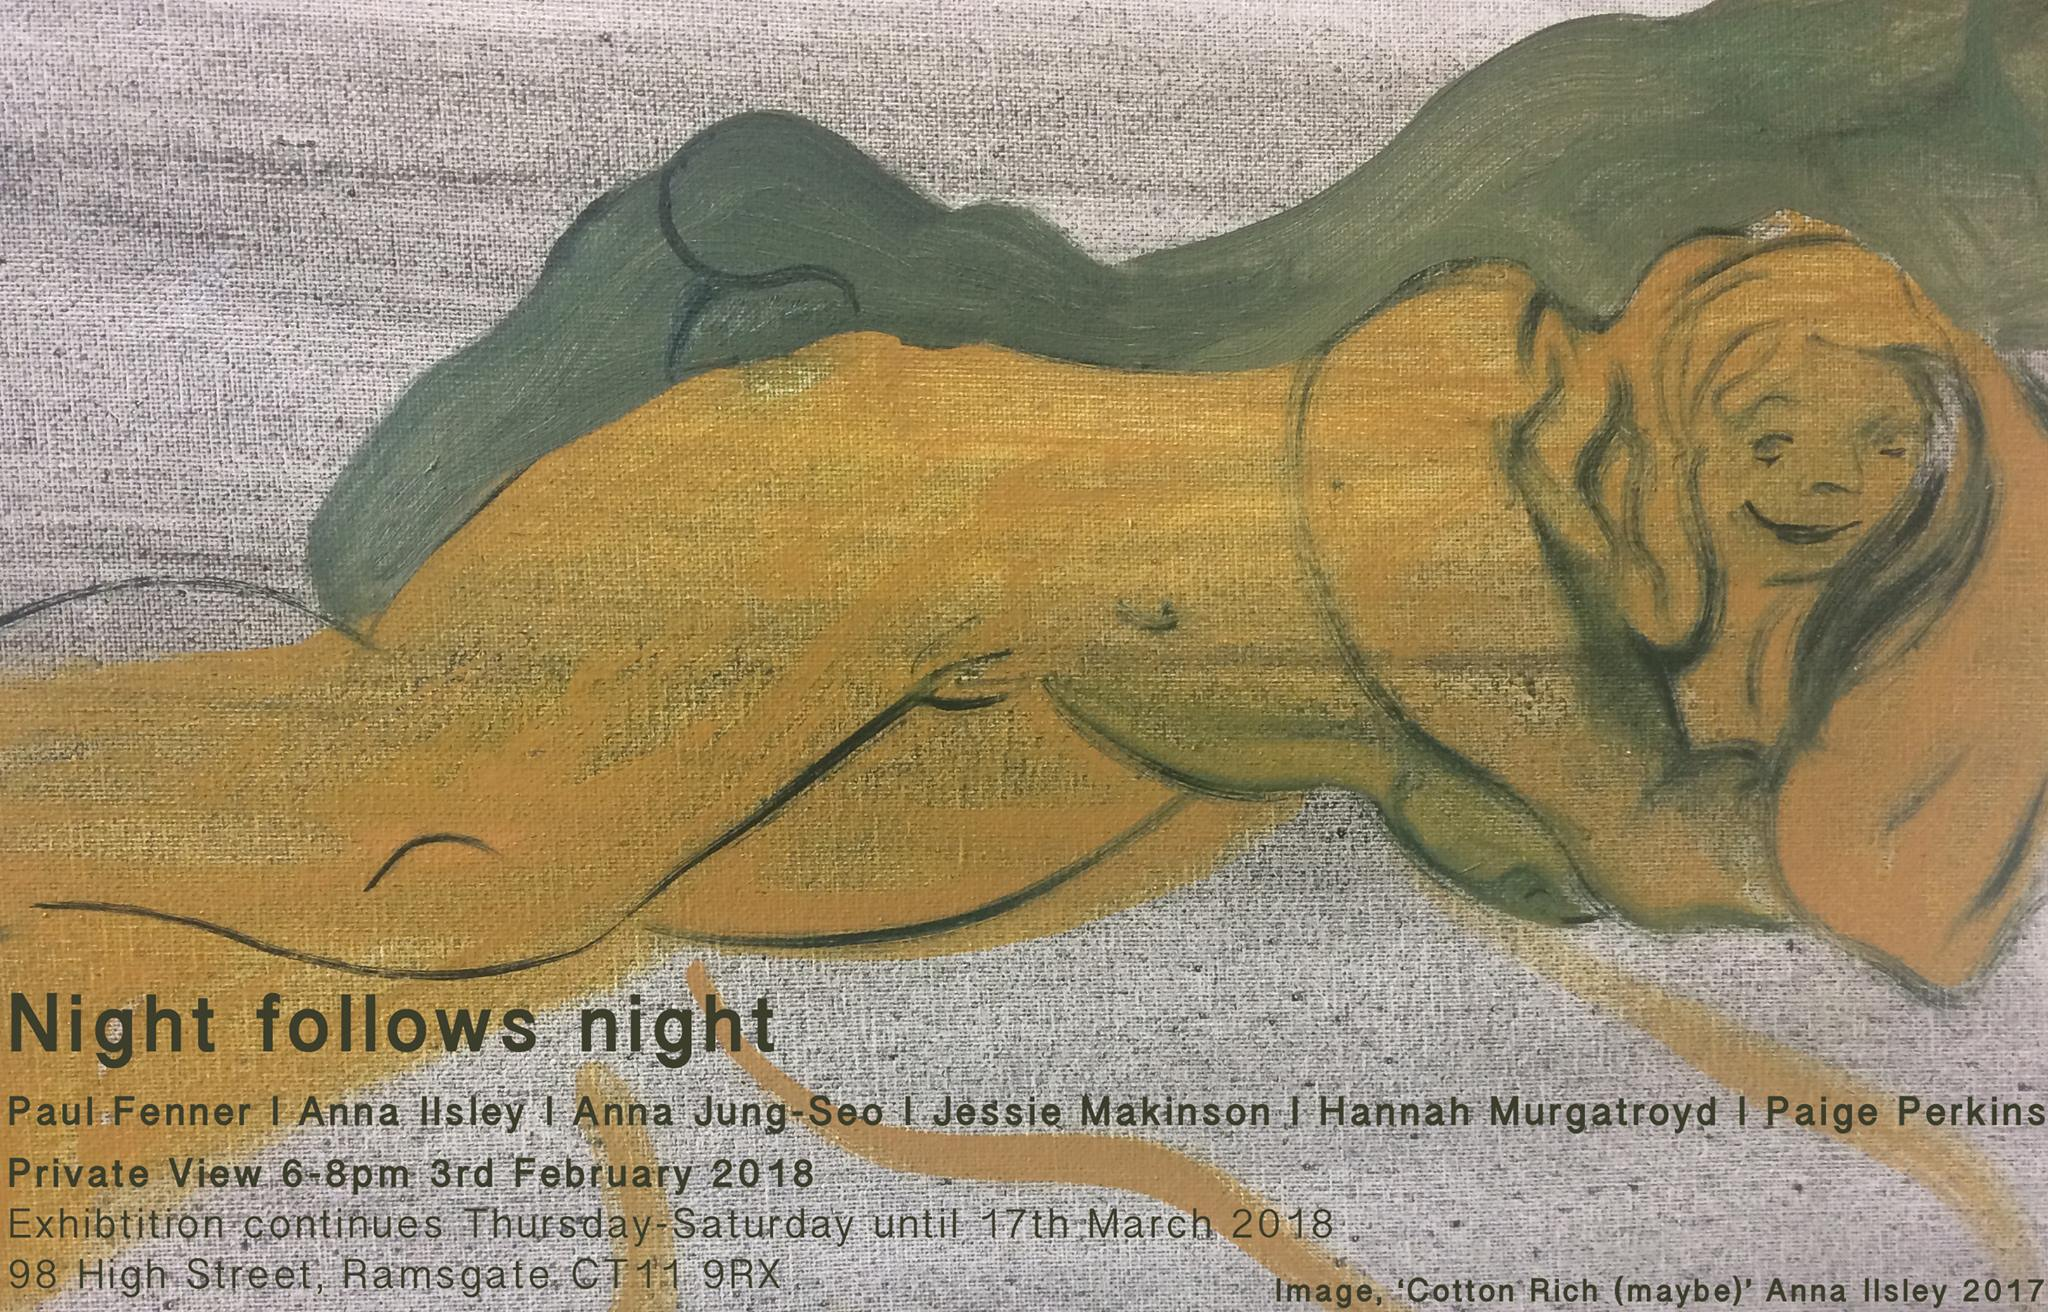 Night follows night press release